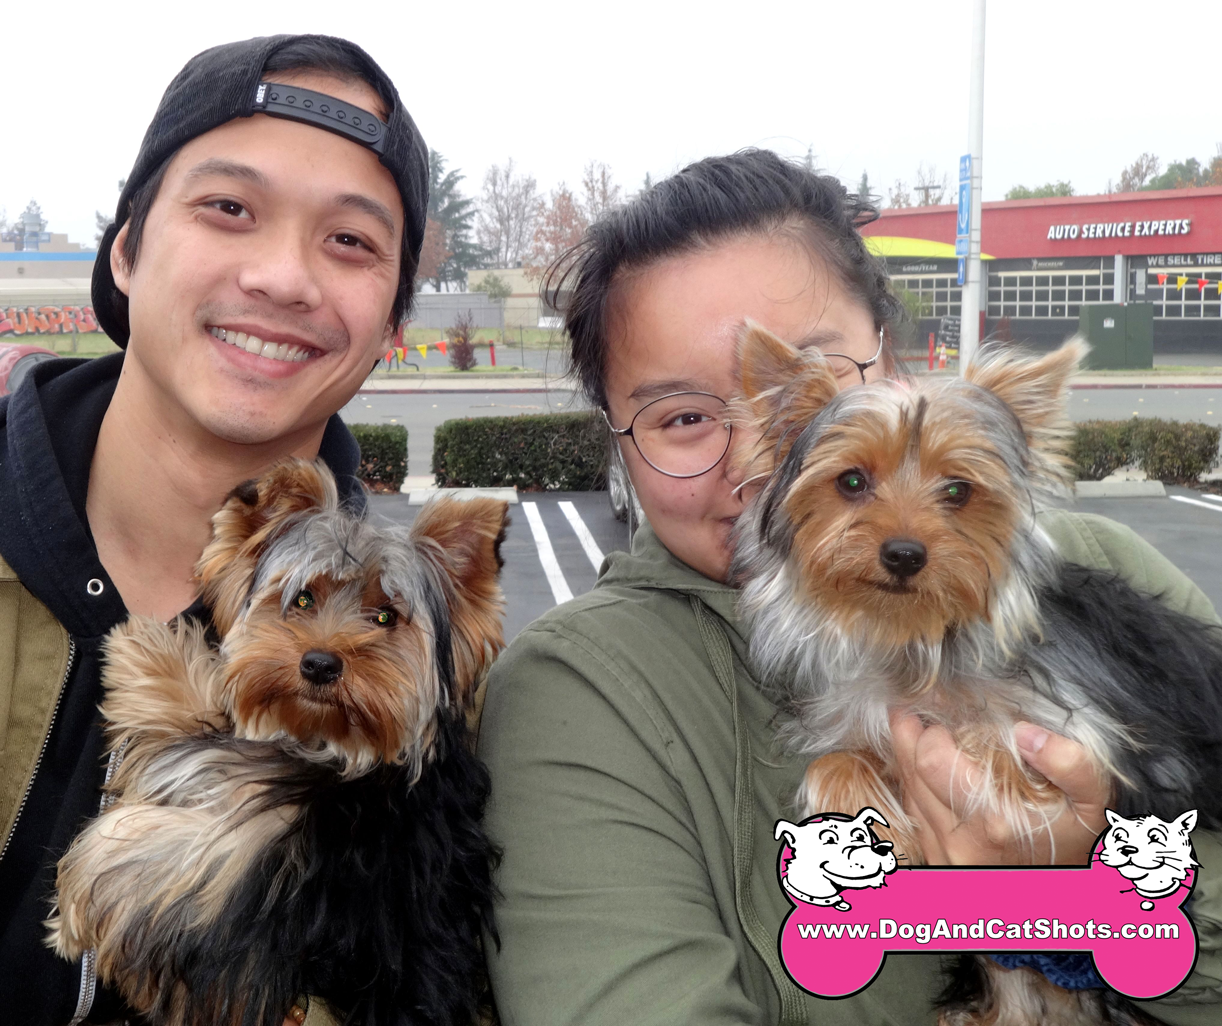 Spaghetti and Meatball The Yorkshire Terriers Visited Our Antioch Vaccination Clinic